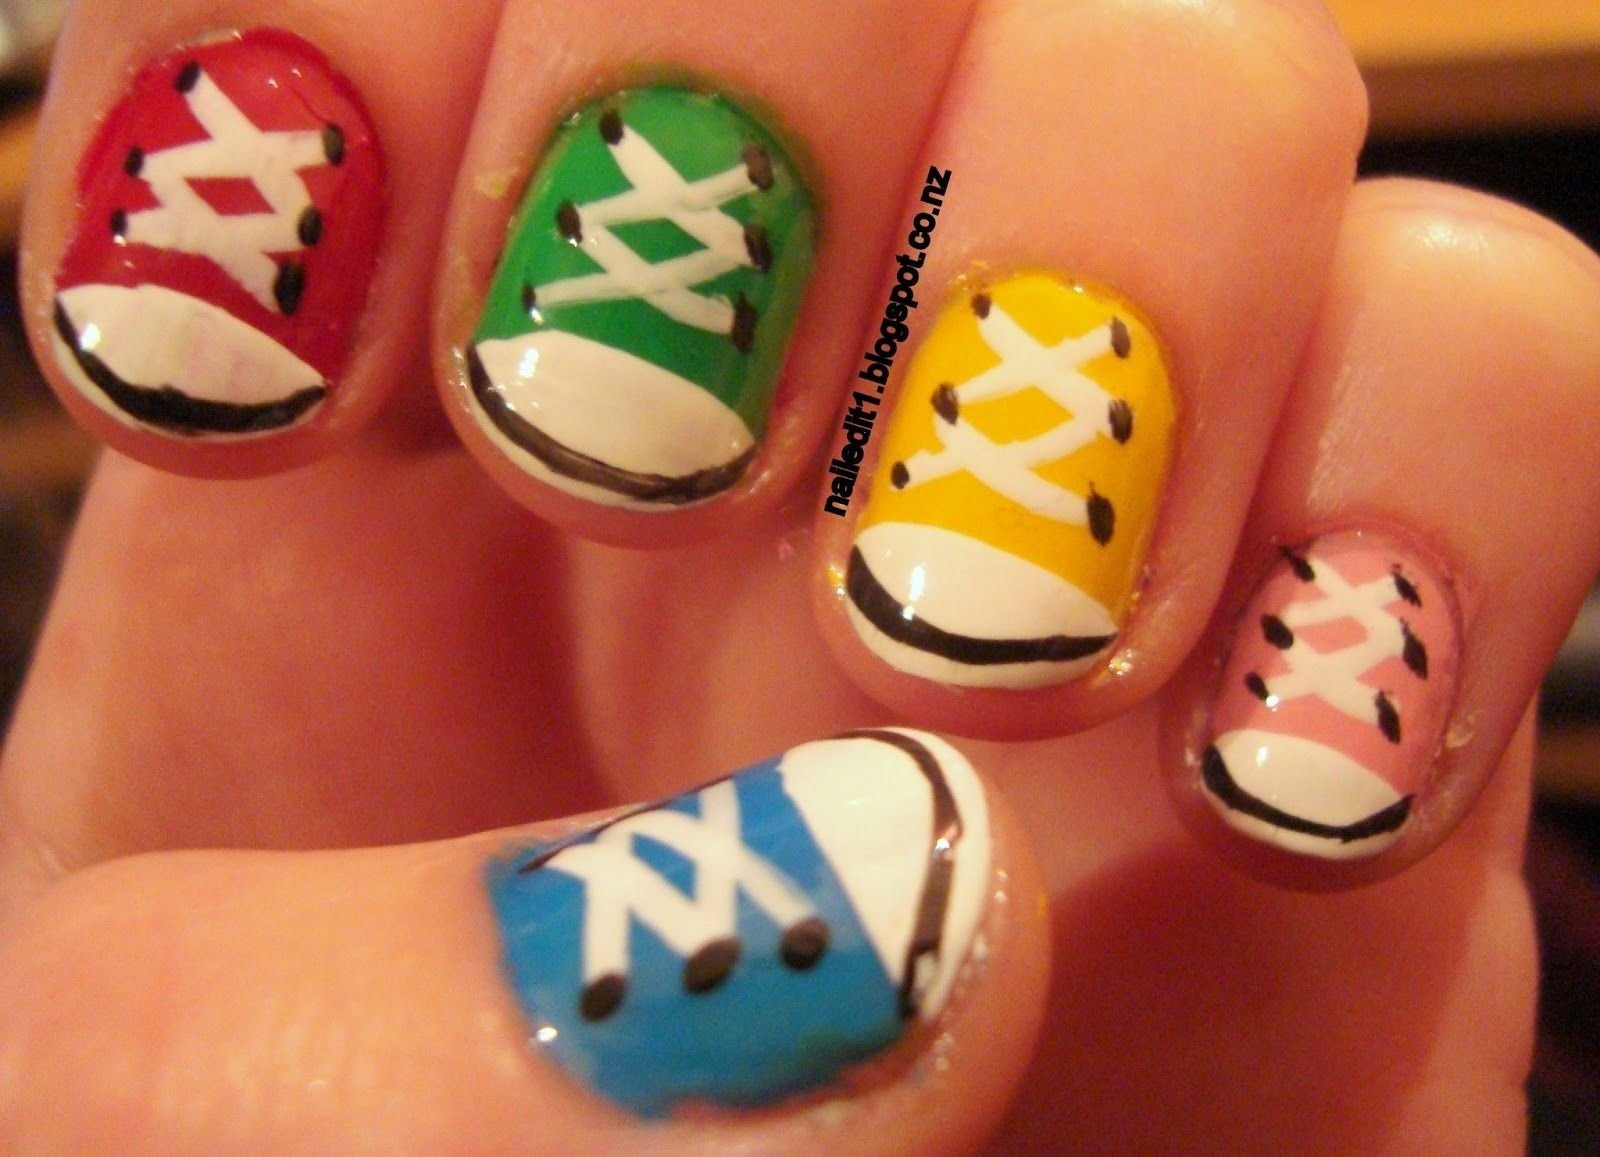 10 Nice Nail Design Ideas For Short Nails simple nail designs for short nails this is totally me hate 5